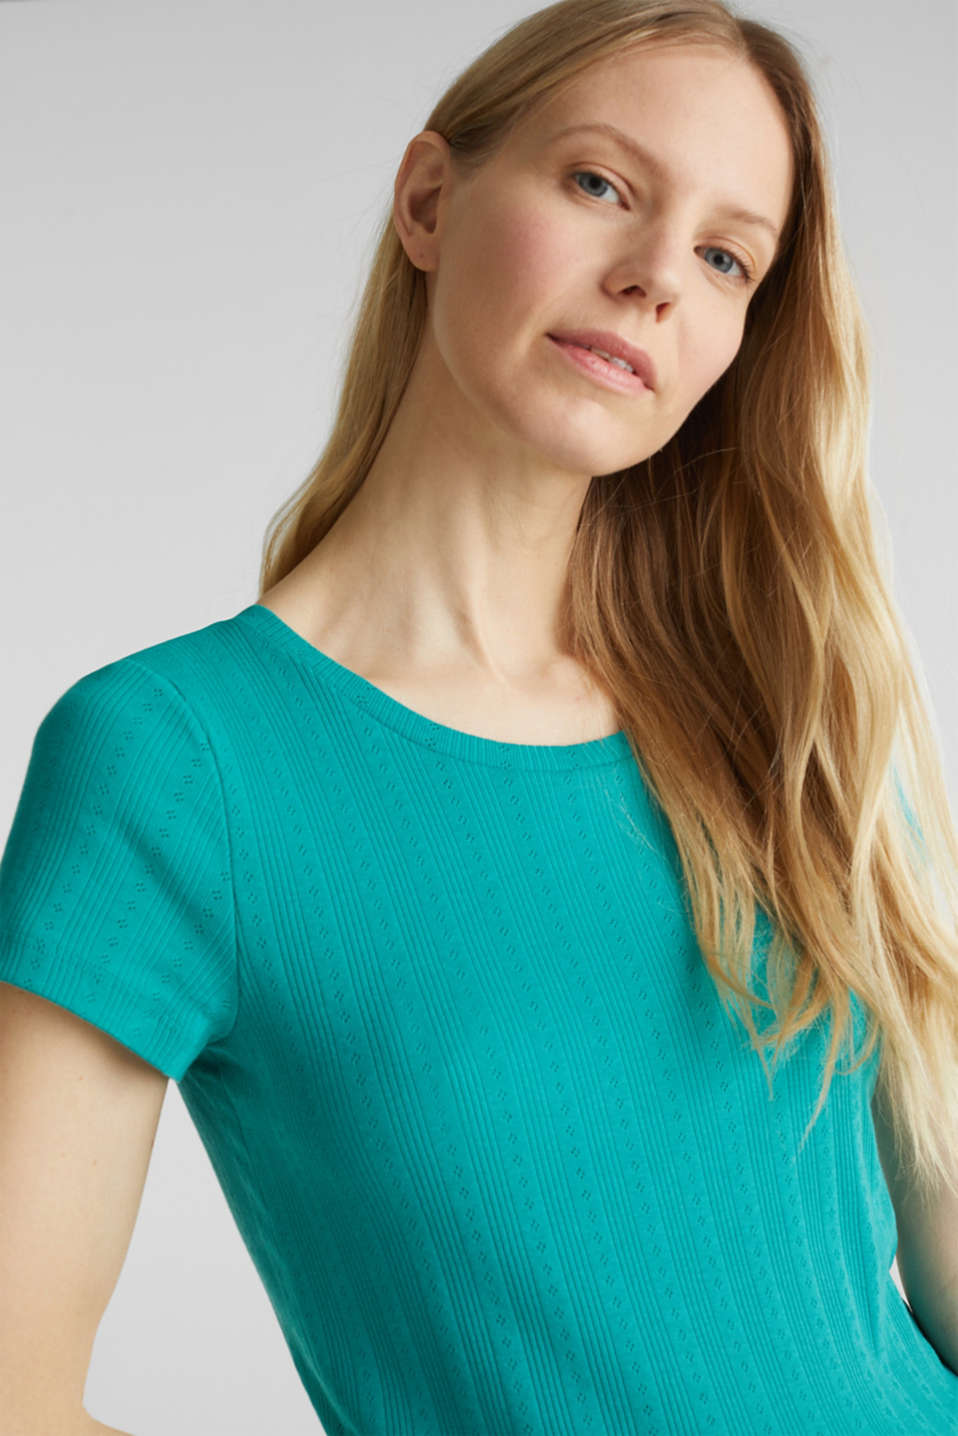 Openwork pattern top made of organic cotton, TEAL GREEN, detail image number 4